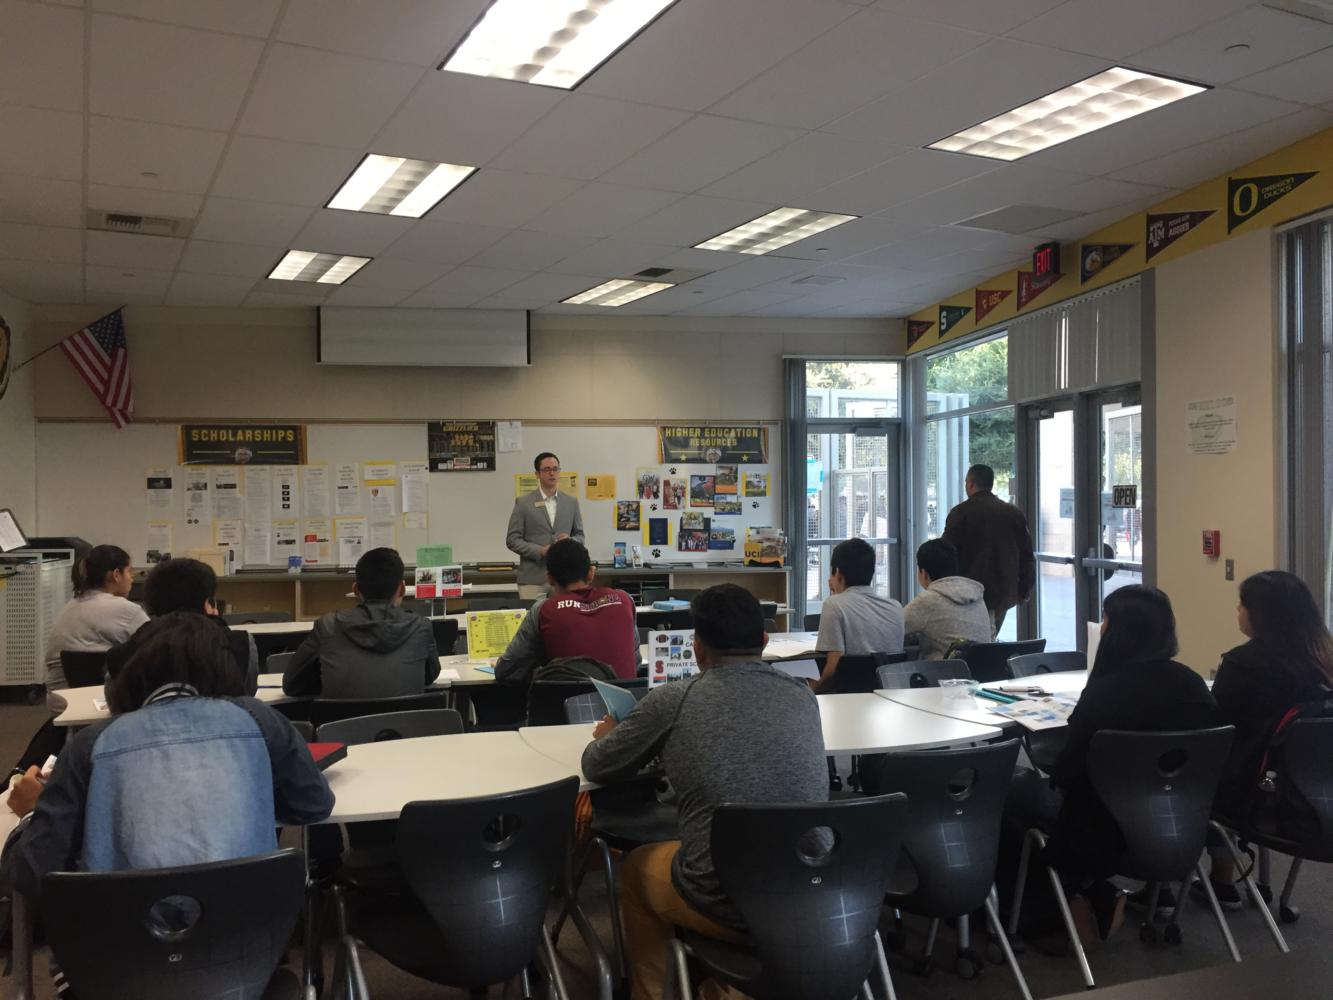 Godinez offers several opportunities on campus, such as college visits.